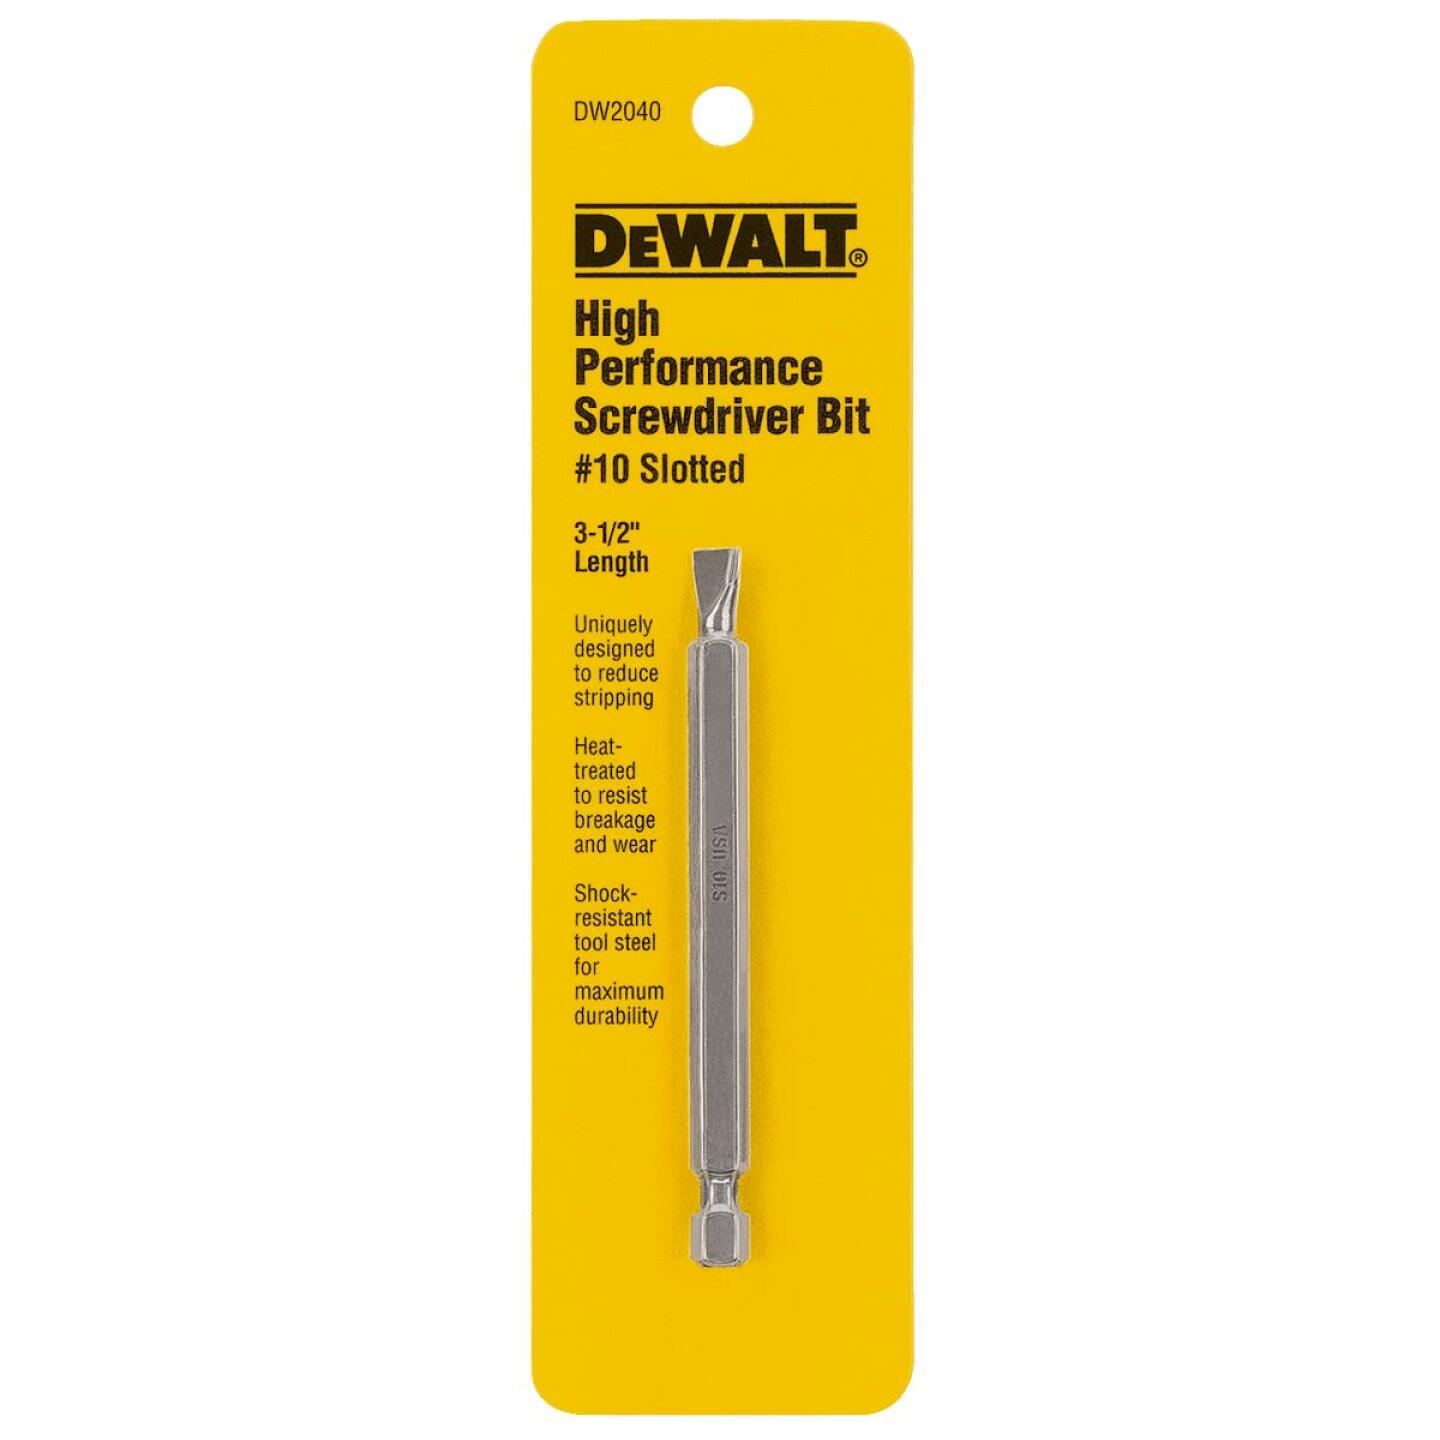 DeWalt Slotted #10 3-1/2 In. 1/4 In. Power Screwdriver Bit Image 1